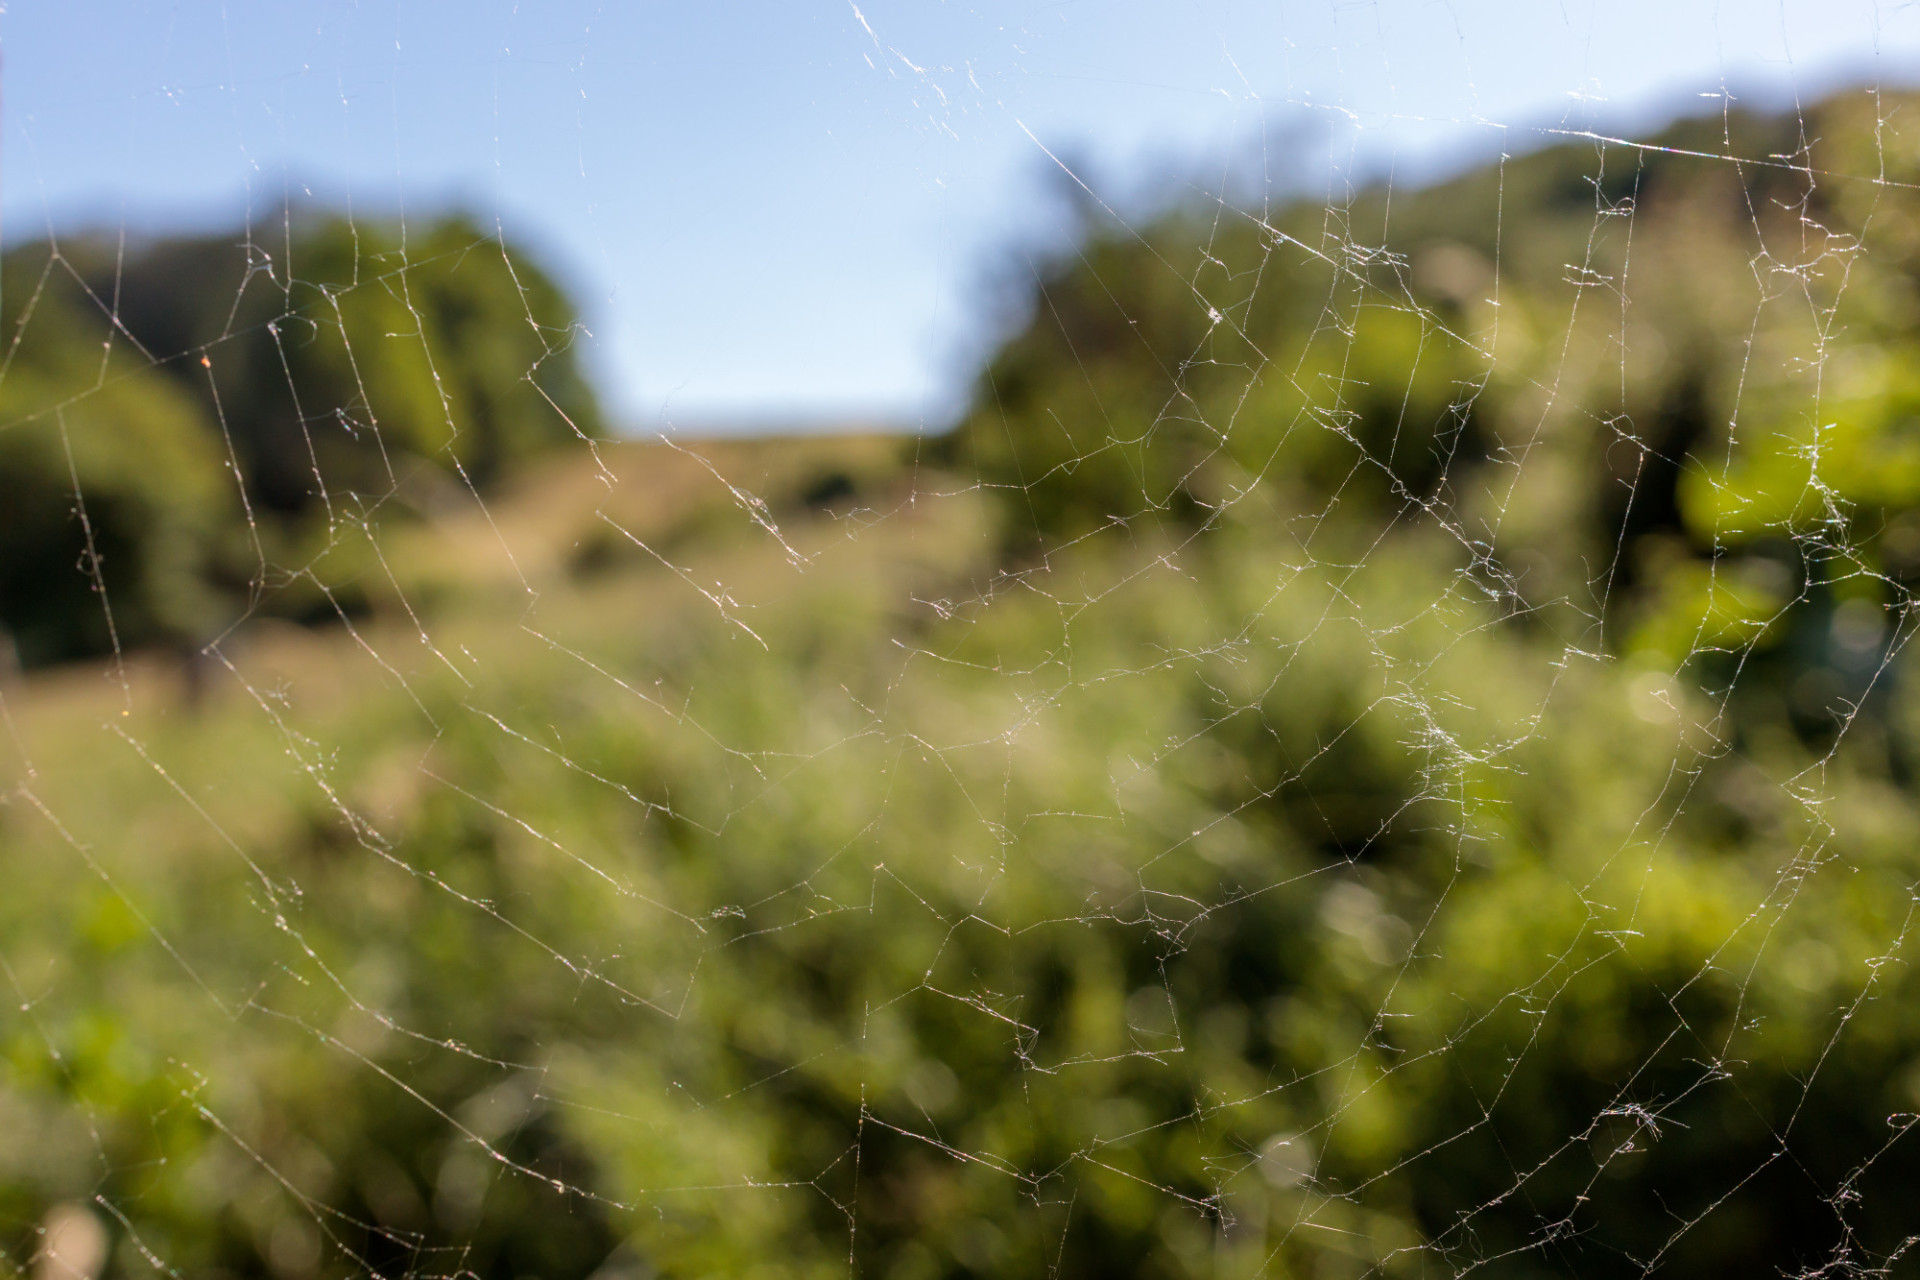 Spider's web in front of a lush green landscape